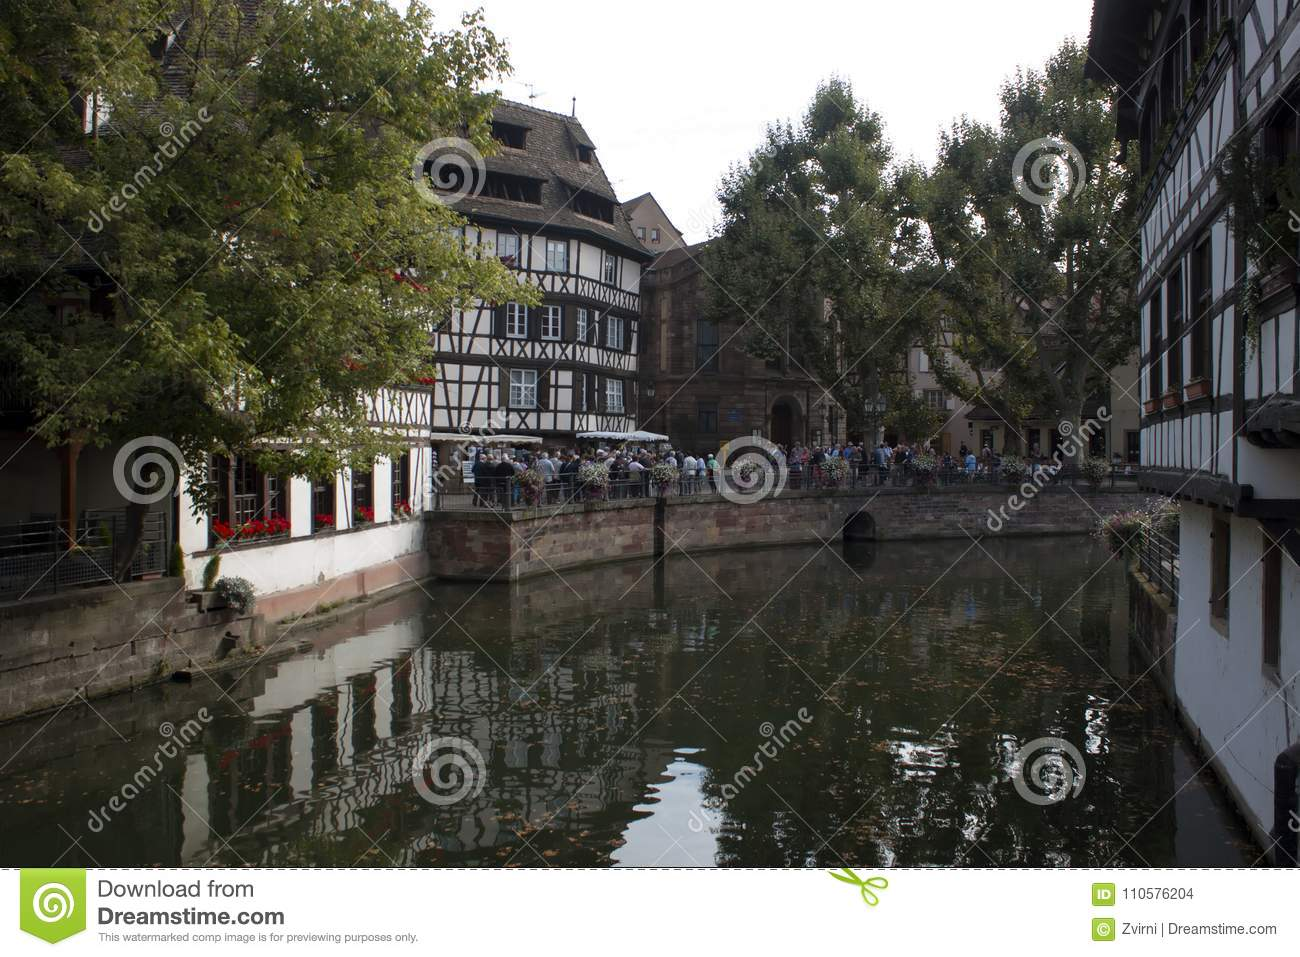 Strasbourg, France - September 3, 2015: Houses near the La Maison des Tanneurs restaurant. It was constructed in 1572 and became